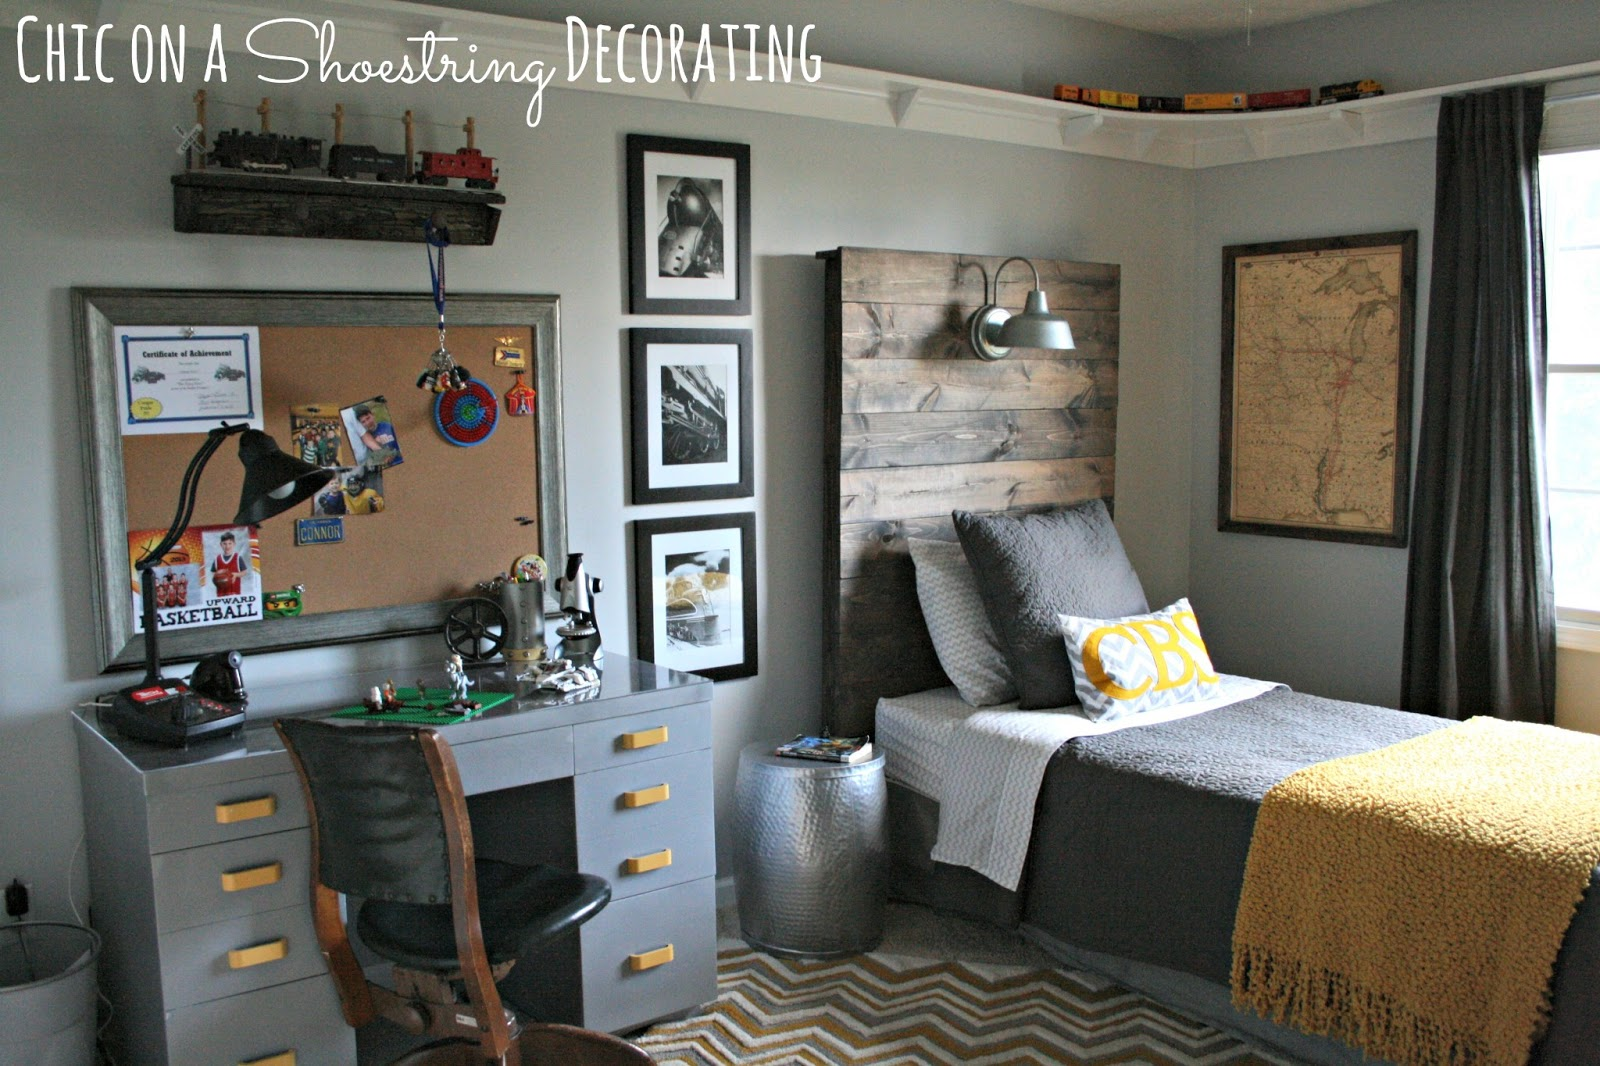 Chic on a shoestring decorating bigger boy room reveal for Bedroom ideas boys